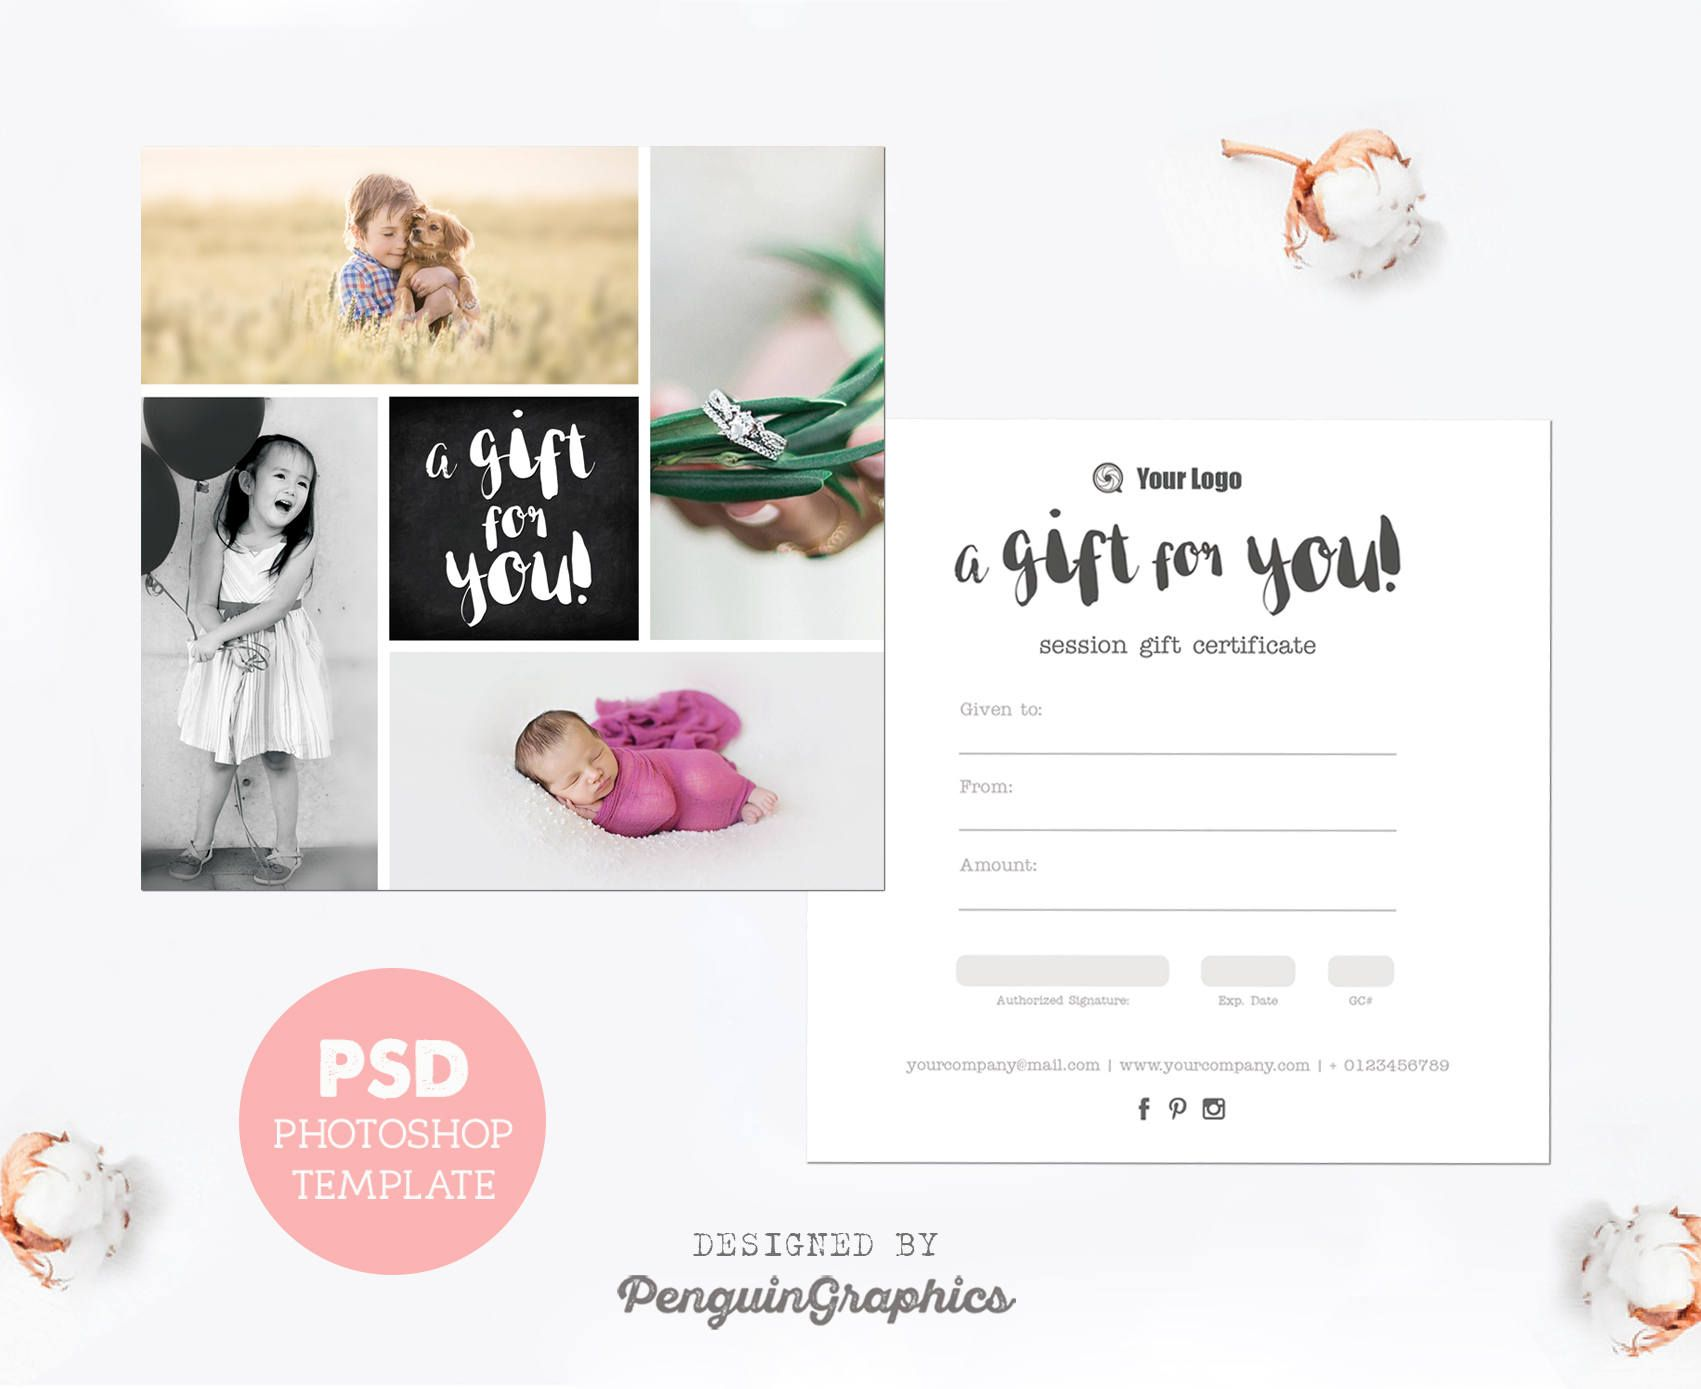 Pin by kate blankenship on fontastic pinterest gift certificate photography mini sessions photography gifts gift certificate template gift certificates psd templates adobe photoshop gift cards edit text yelopaper Gallery